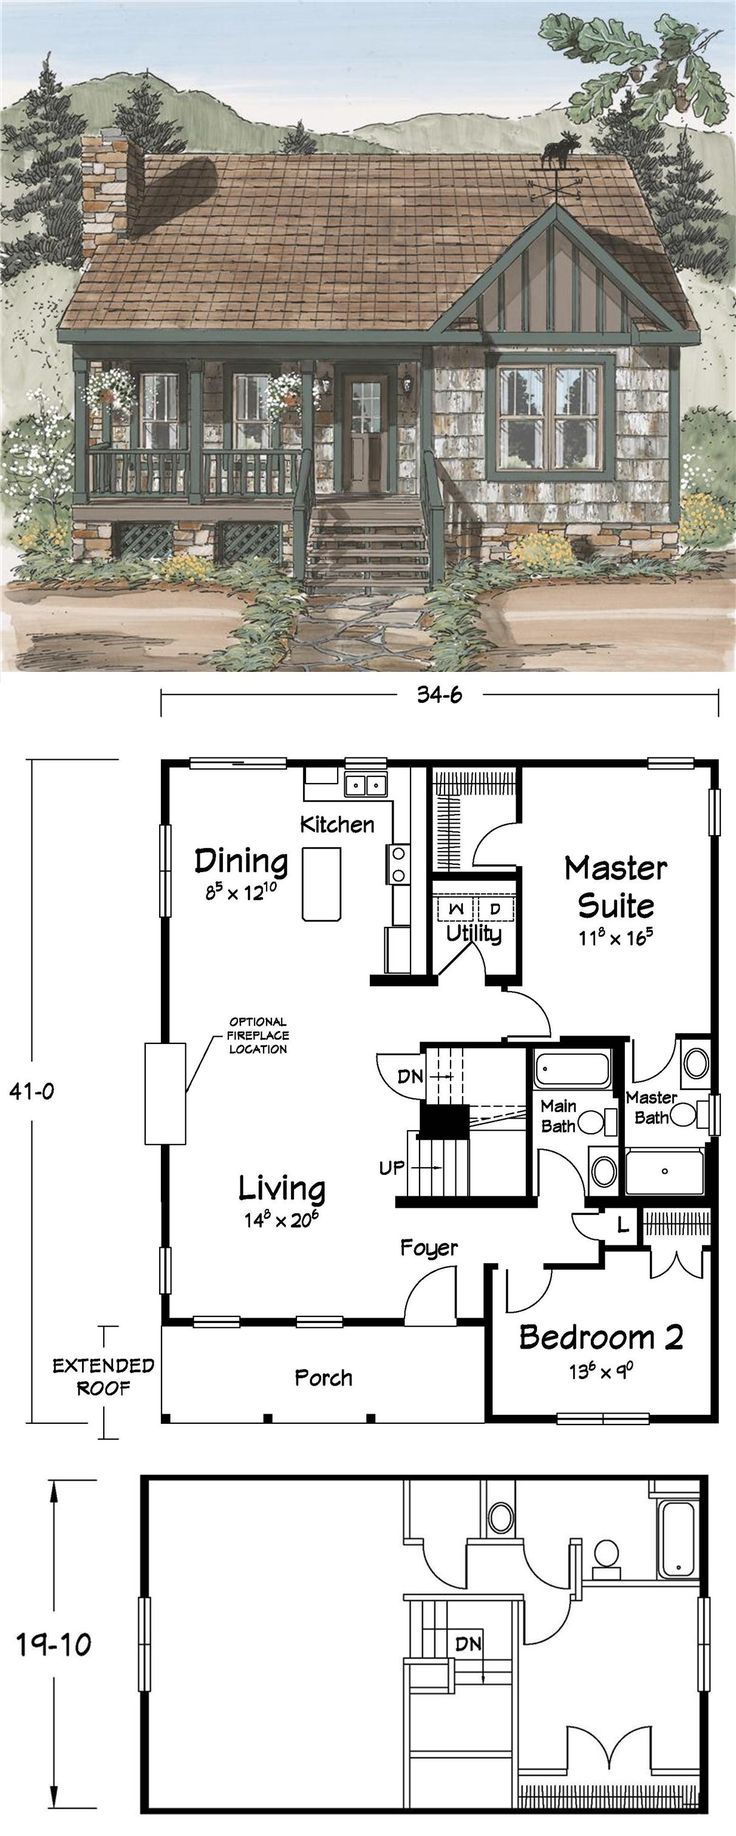 Cute floor plans tiny homes pinterest cabin small for Cute house design